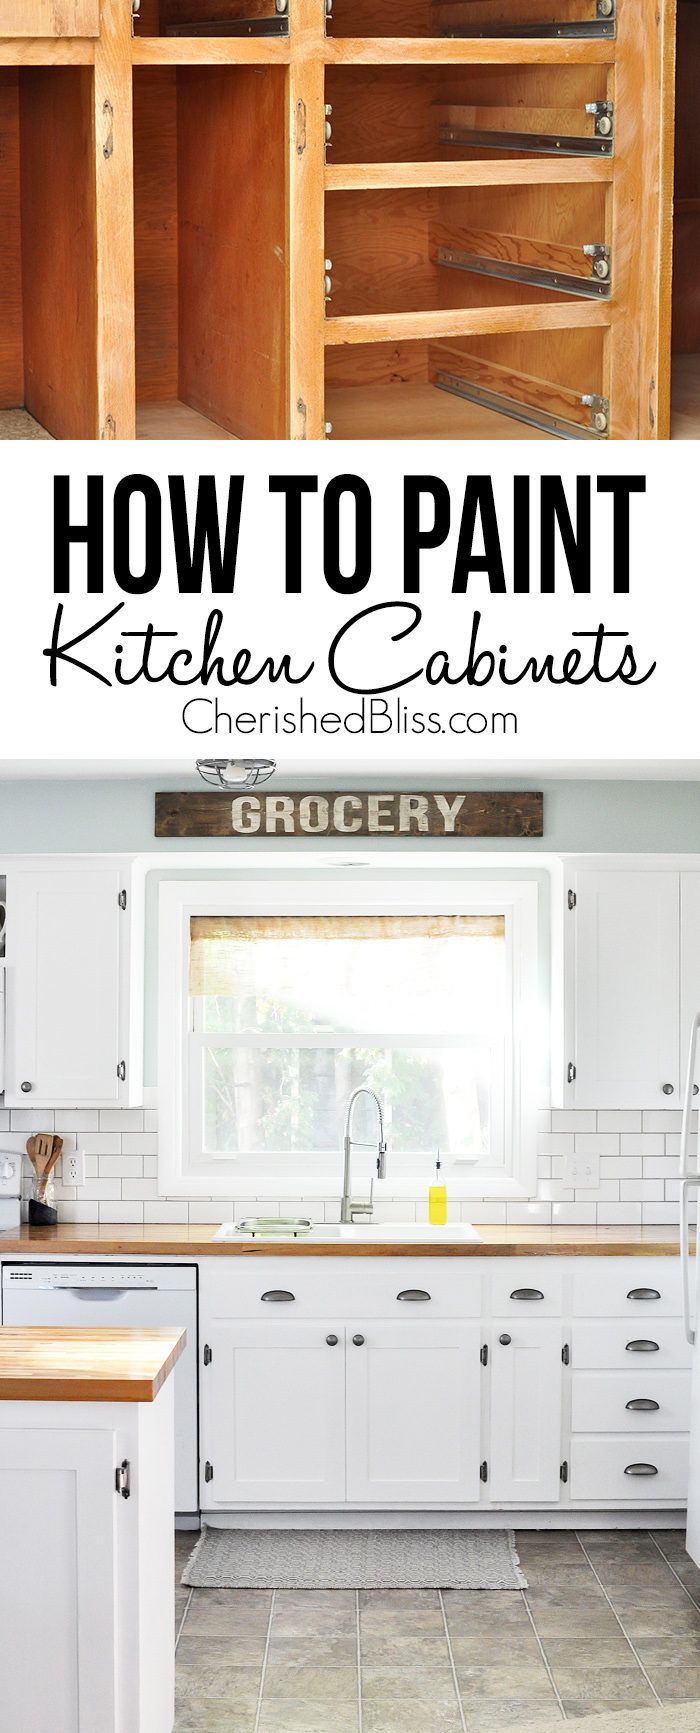 Tips on How to Paint Kitchen Cabinets | Homey Decor | Painting ... Ugly Painted Kitchen Cabinet Ideas on ugly kitchen cabinet makeover, ugly 1970s kitchen cabinets, ugly kitchen remodel, ugly refrigerator ideas, ugly kitchen contest 2014, ugly living room ideas,